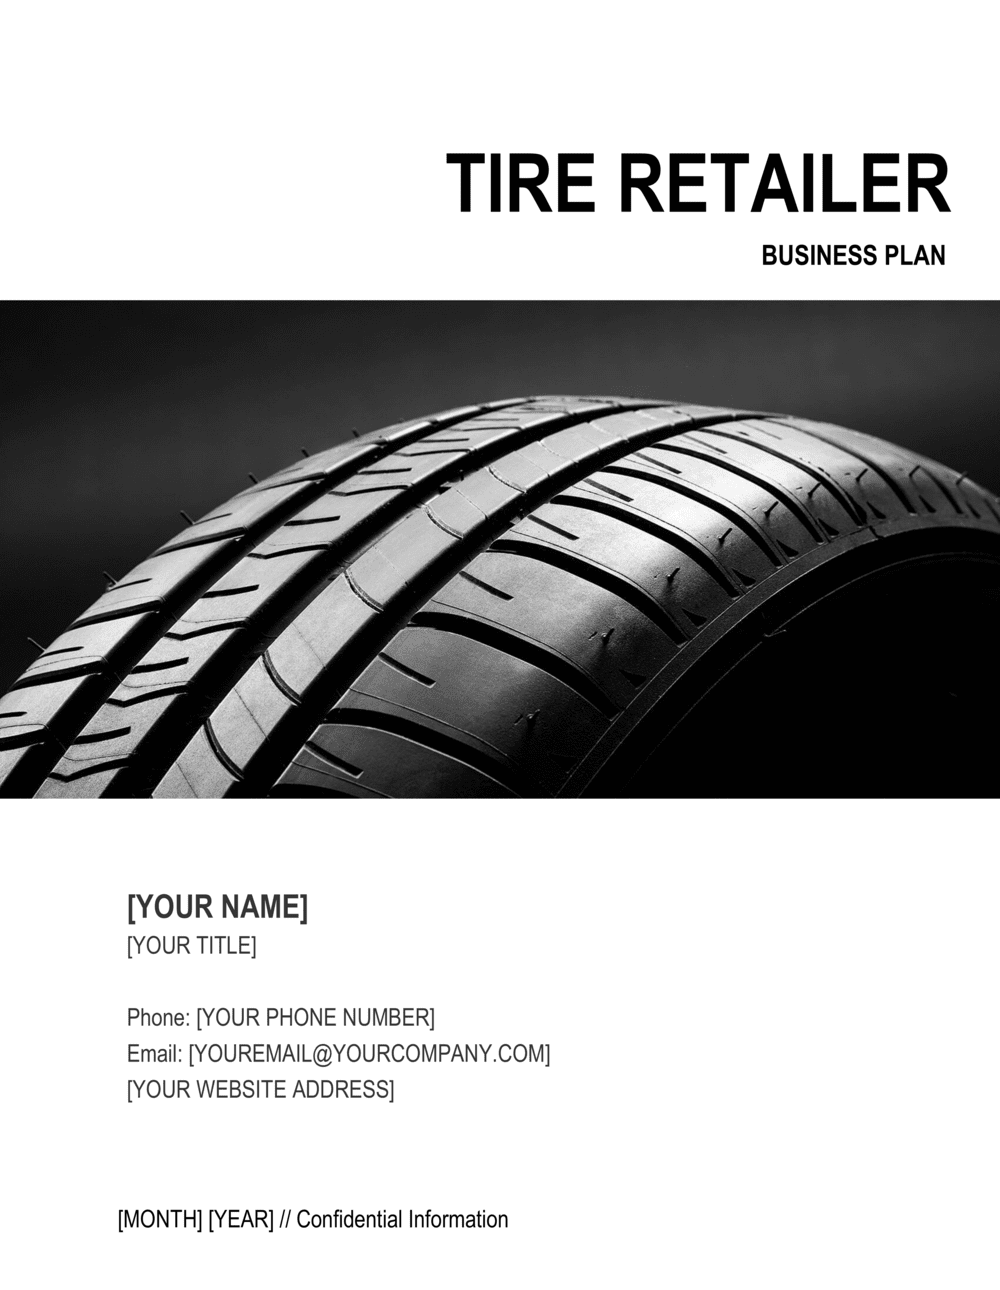 Business-in-a-Box's Tire Retailer Business Plan Template